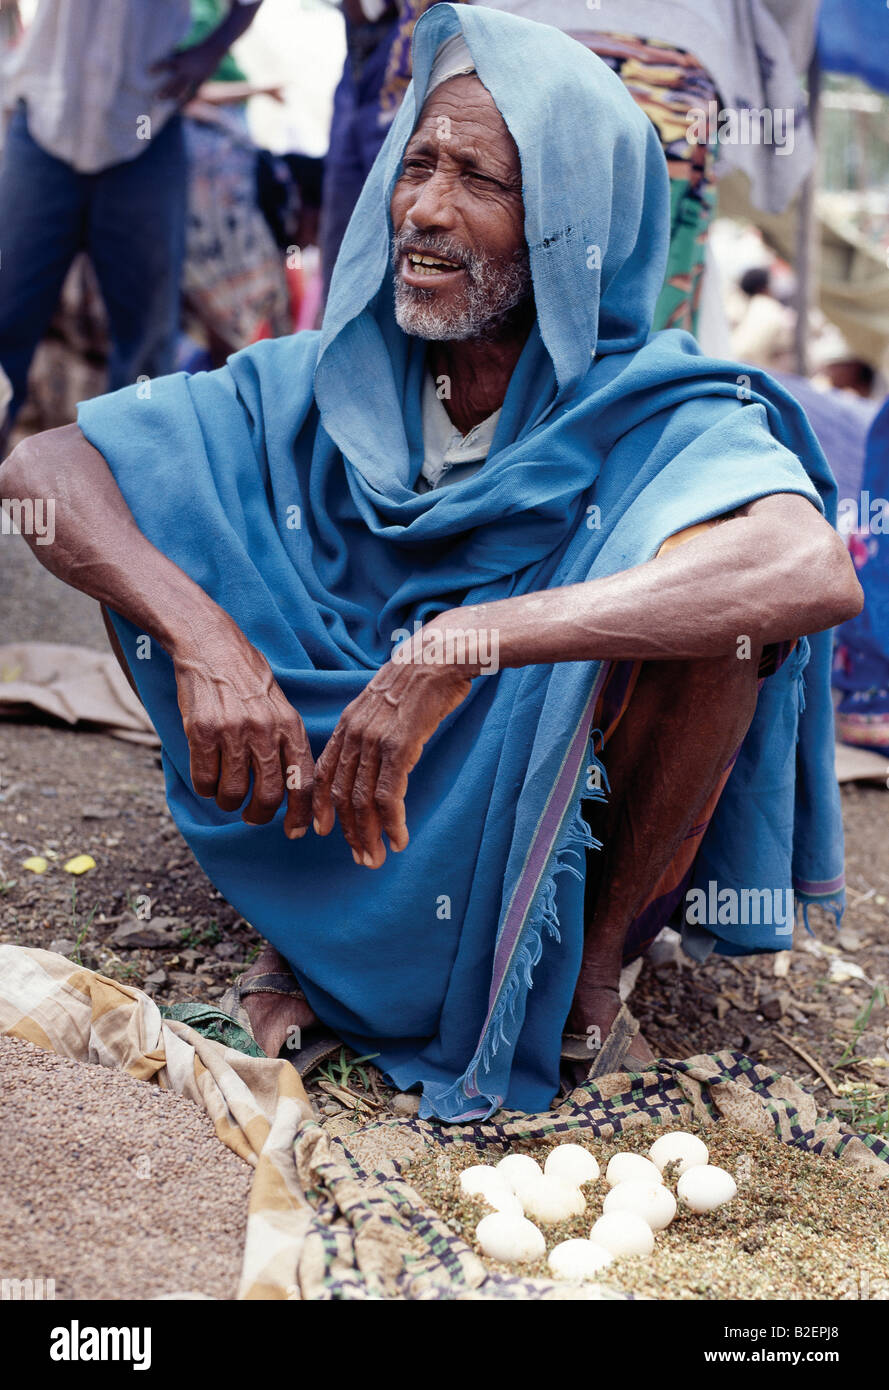 An old man sells eggs at Bati market. Bati is the largest open-air market in Ethiopia. - Stock Image